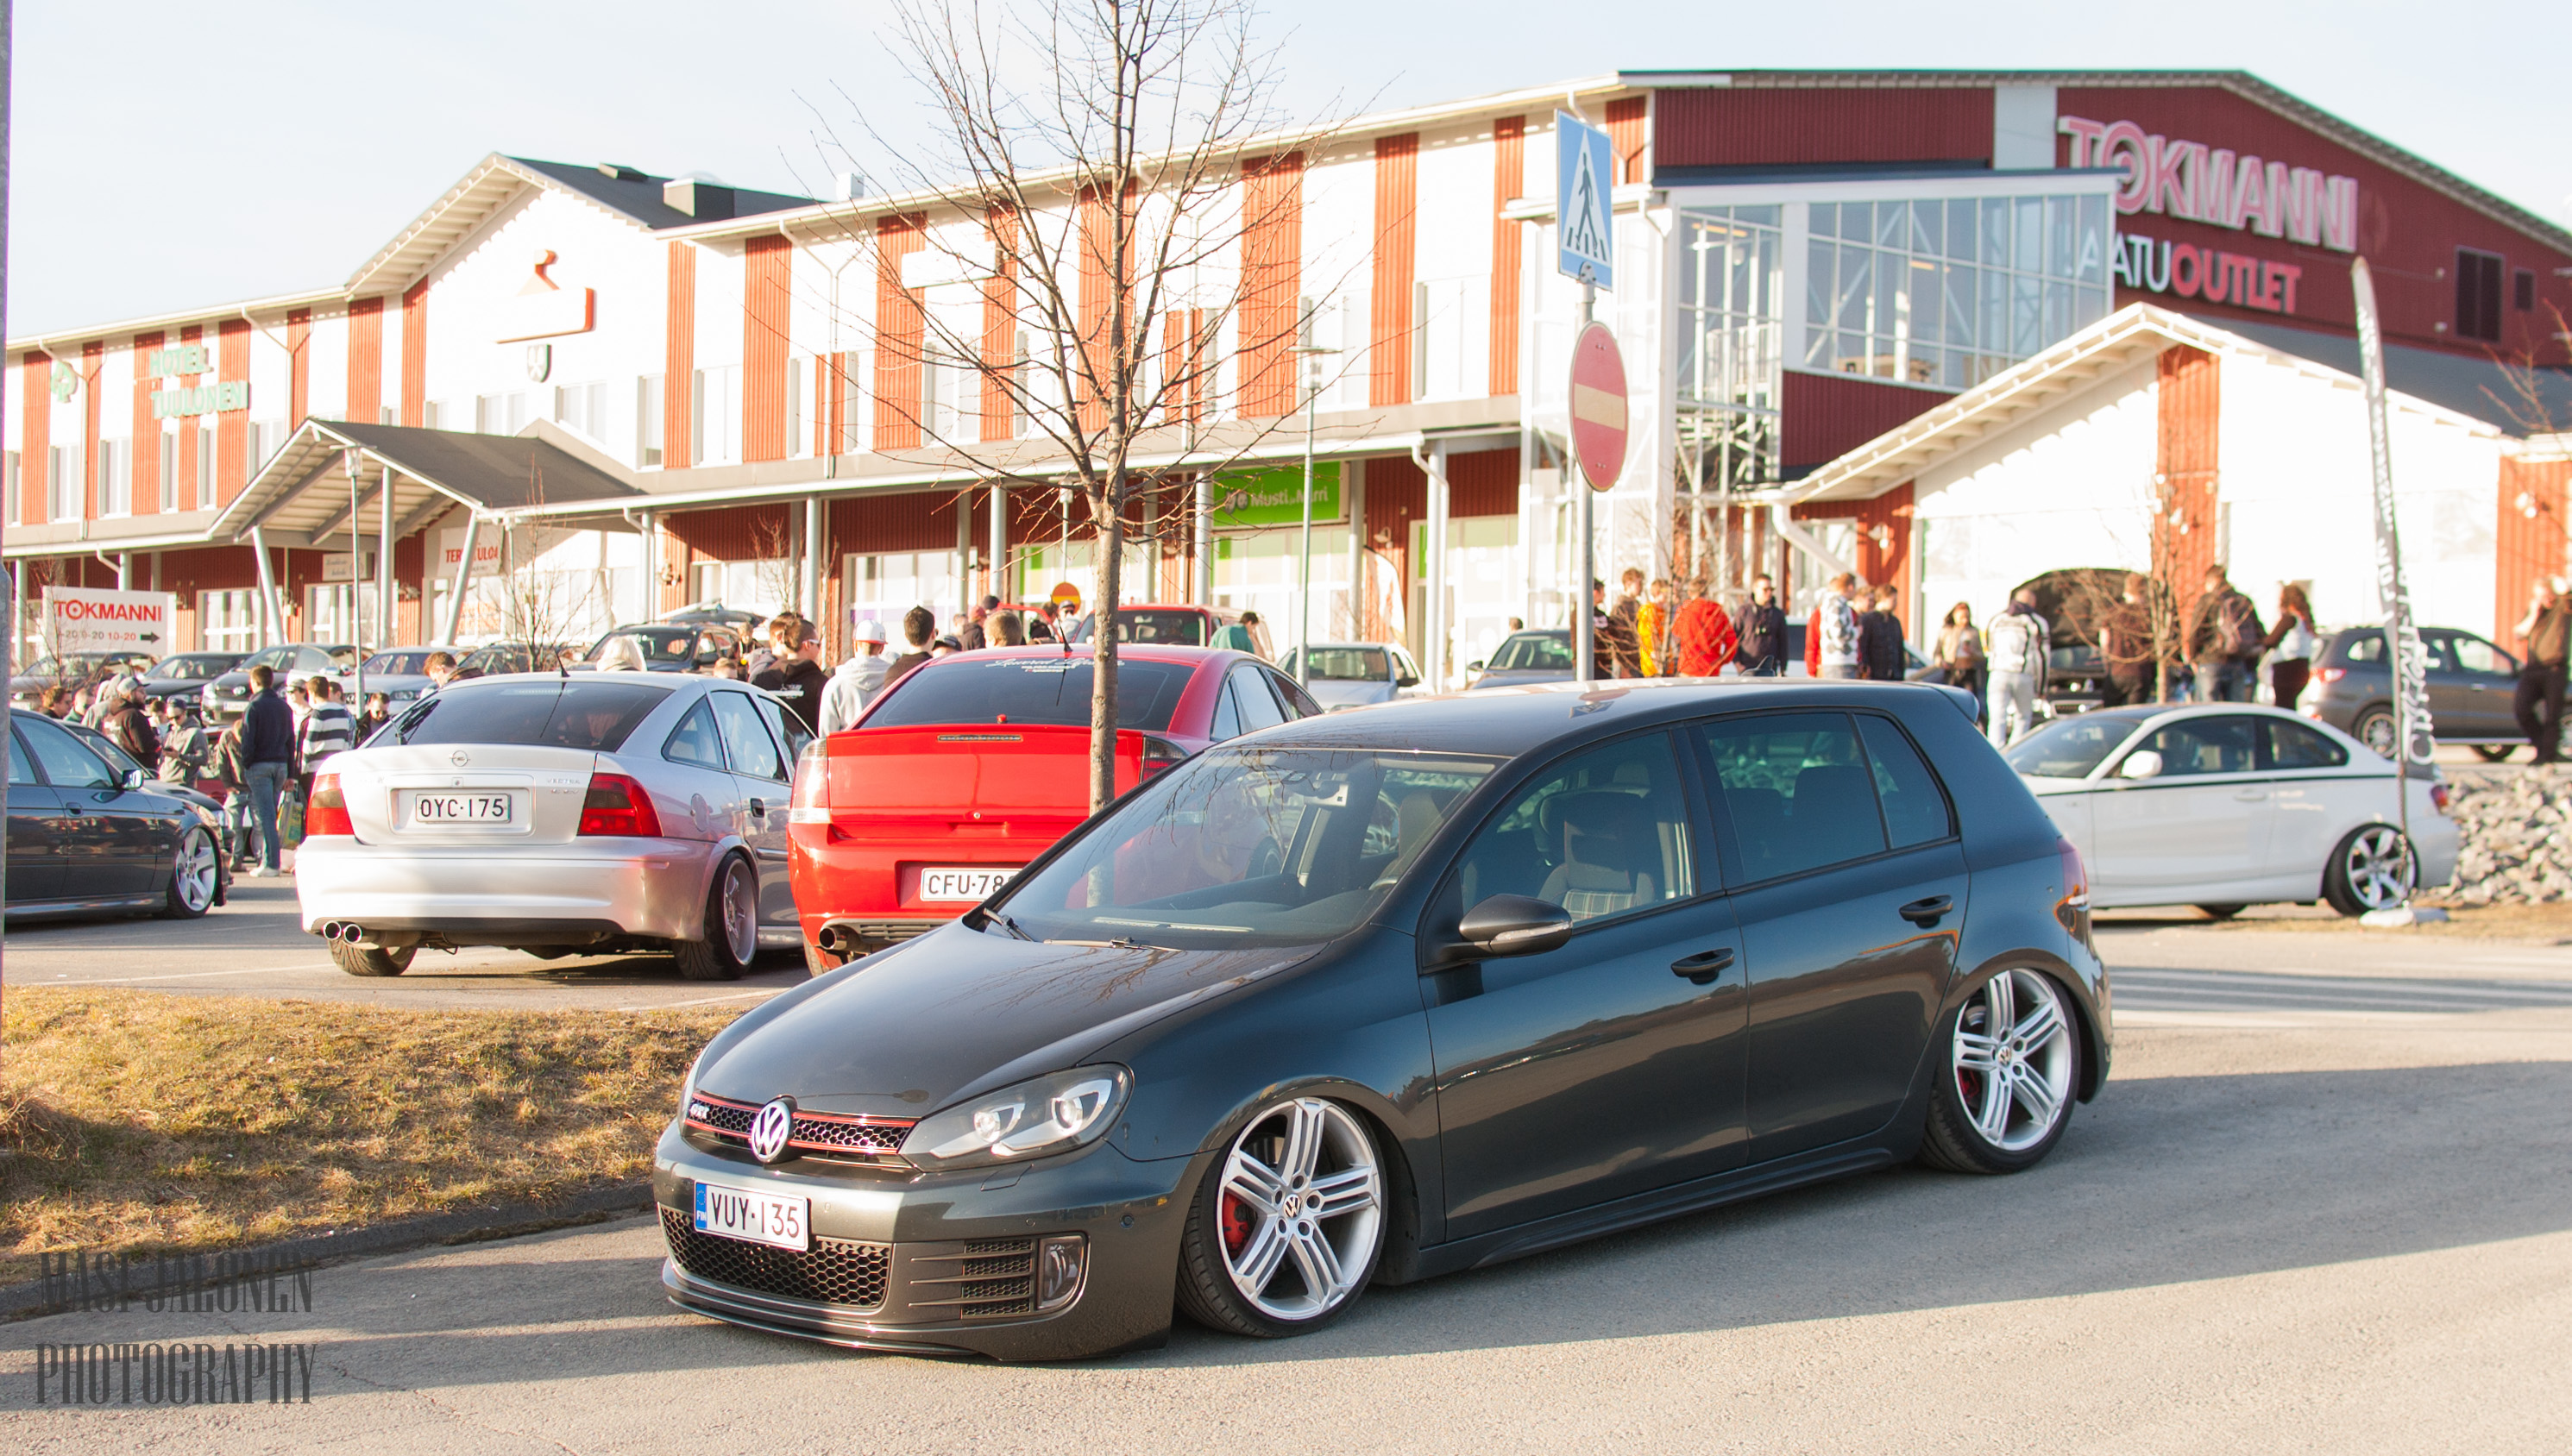 MixuJoo: EX GTI Golf mk4 bagged // Now mk6 GTI bagged - Sivu 17 _full